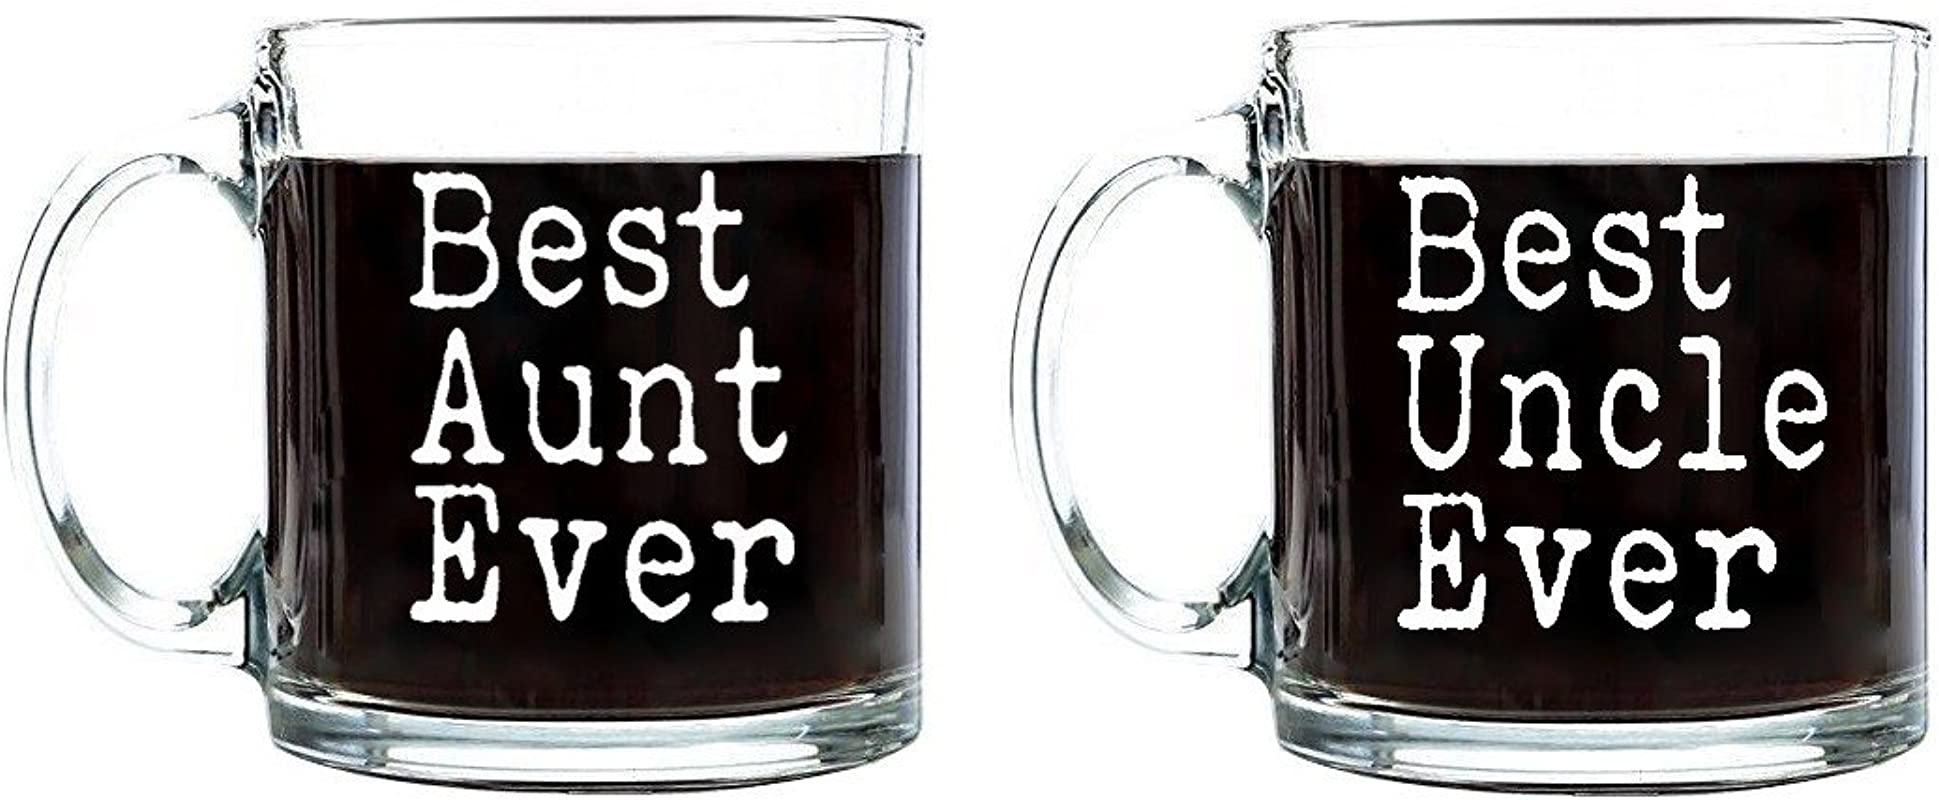 Best Aunt Uncle Ever Mother S Father S Day Birthday Gift For Aunt Uncle Coffee Tea Beverages Clear Glass Mugs 13 Oz Set Best Aunt Uncle Ever